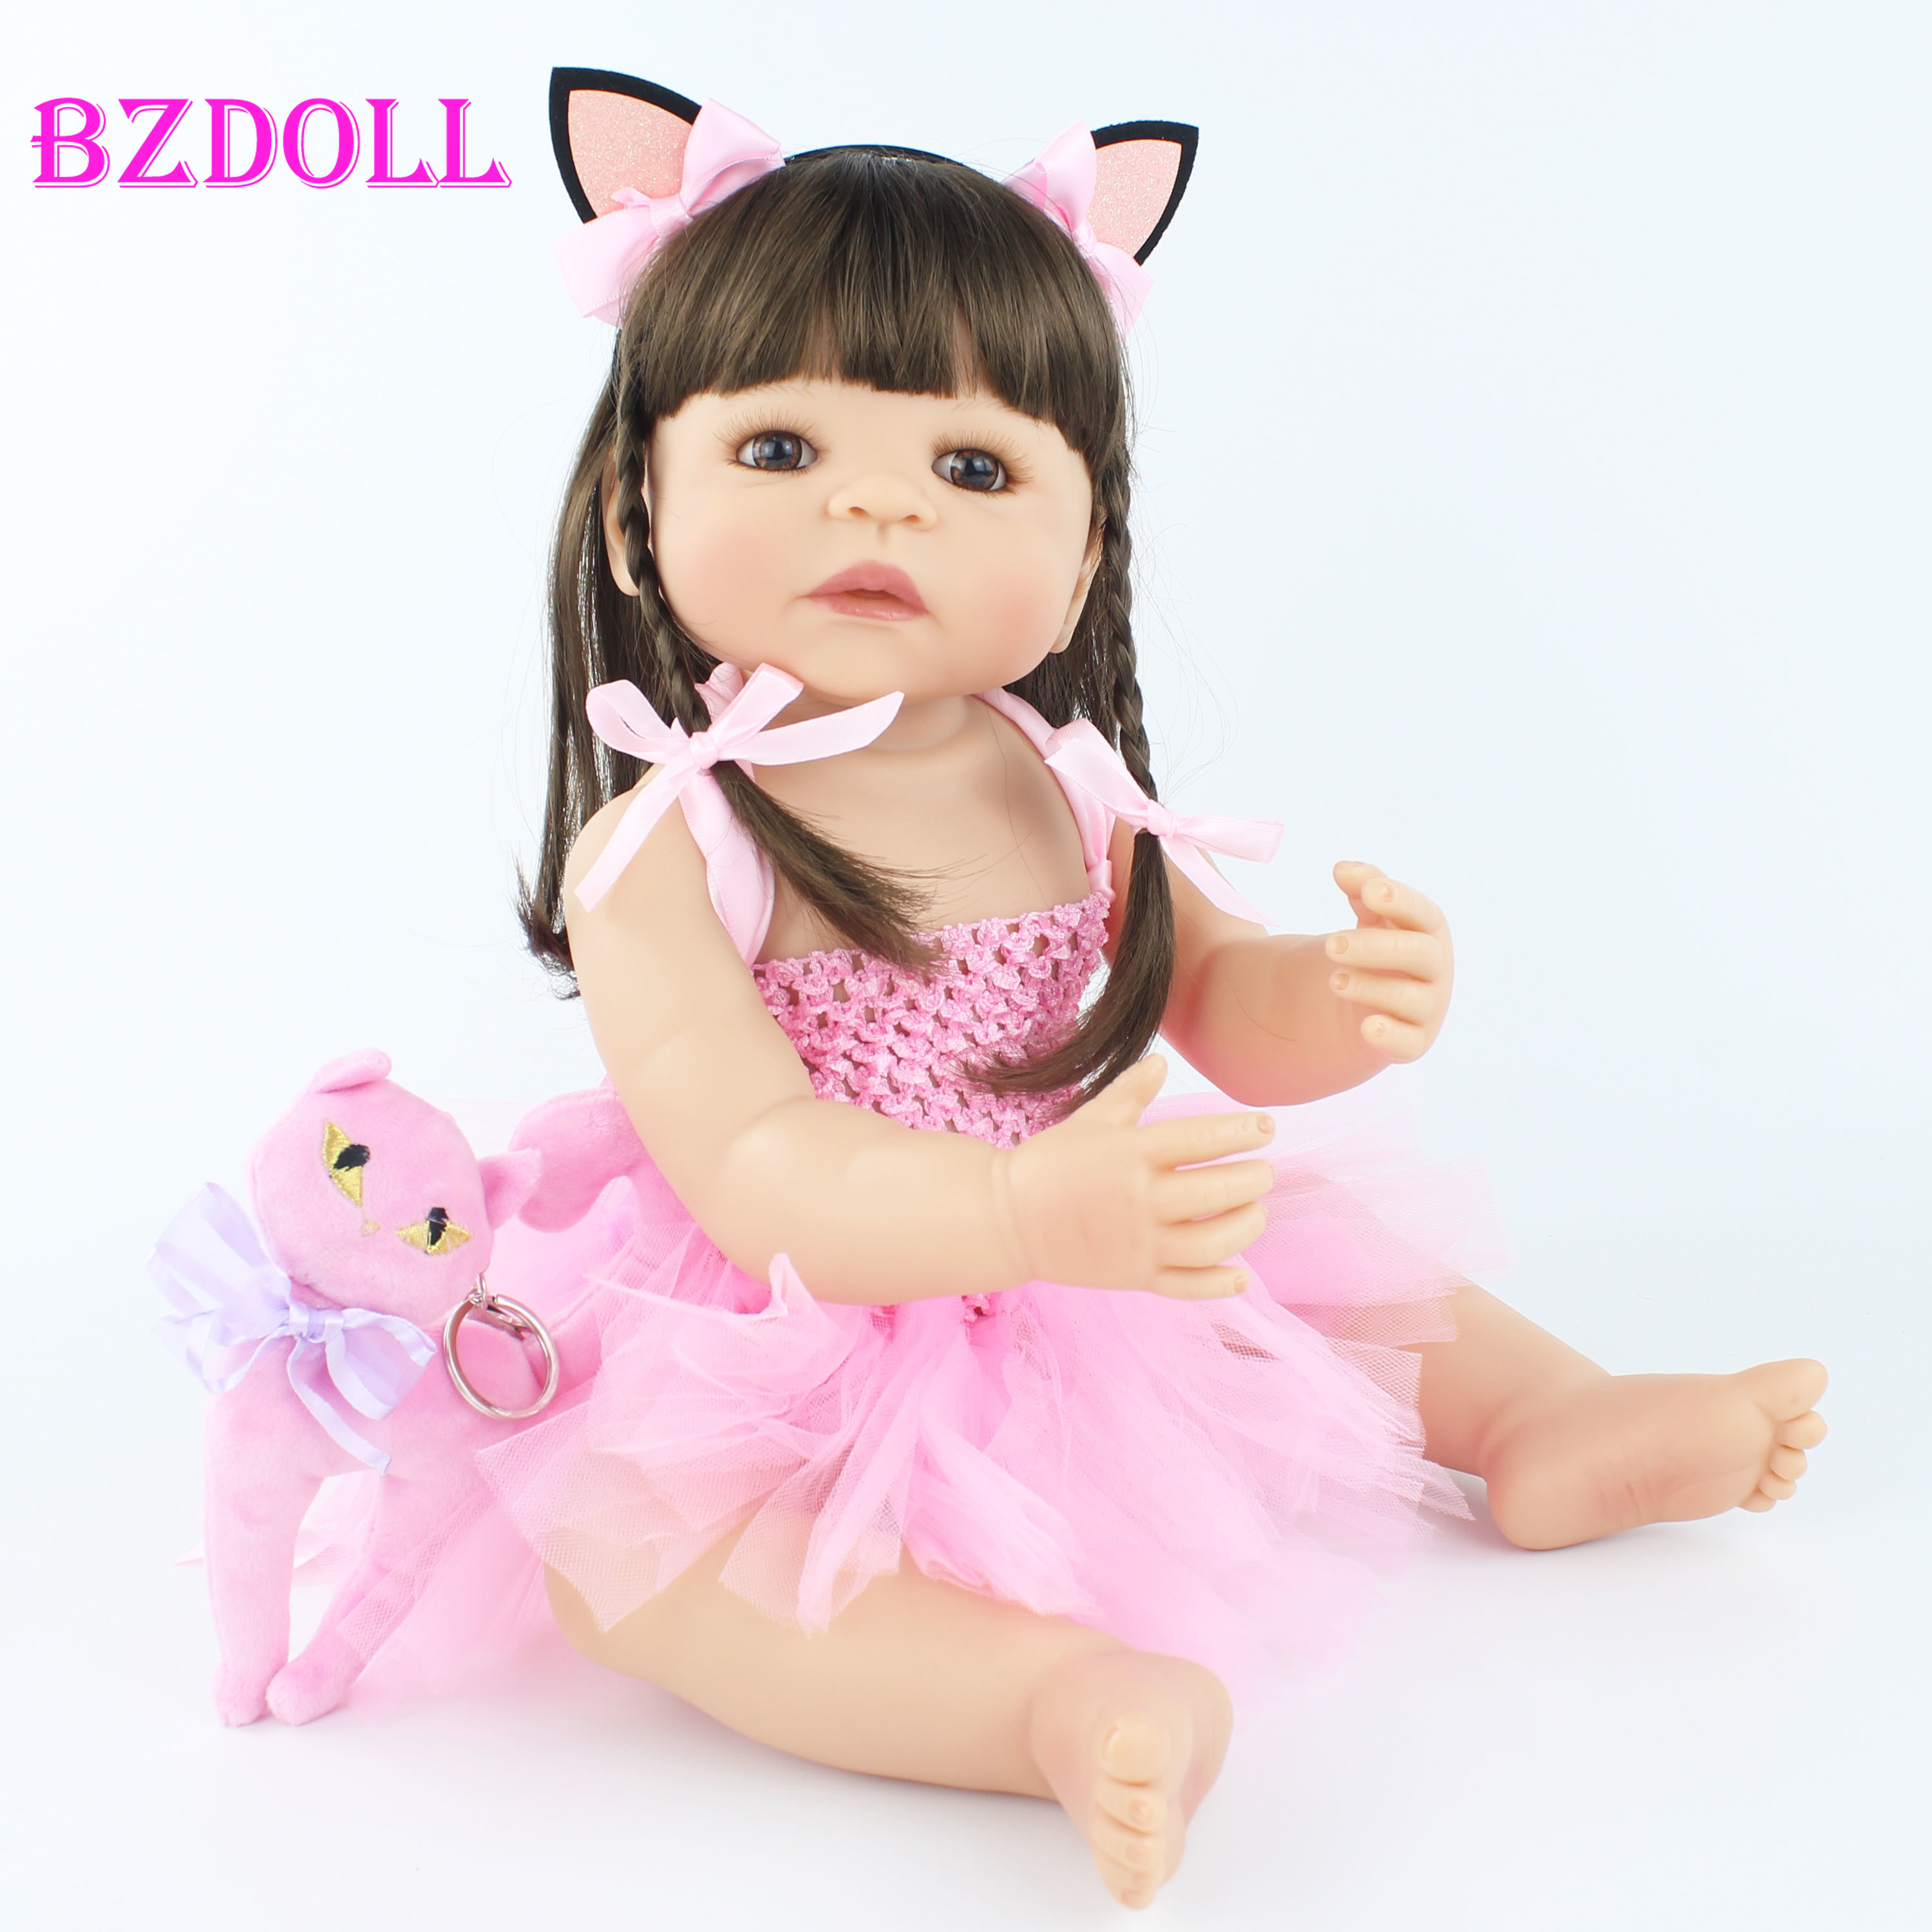 55cm Full Silicone Reborn Baby Doll Toy For Girl Newborn Princess Toddler Alive Babies Bebe Classic Boneca Bathe Shower Toy(China)